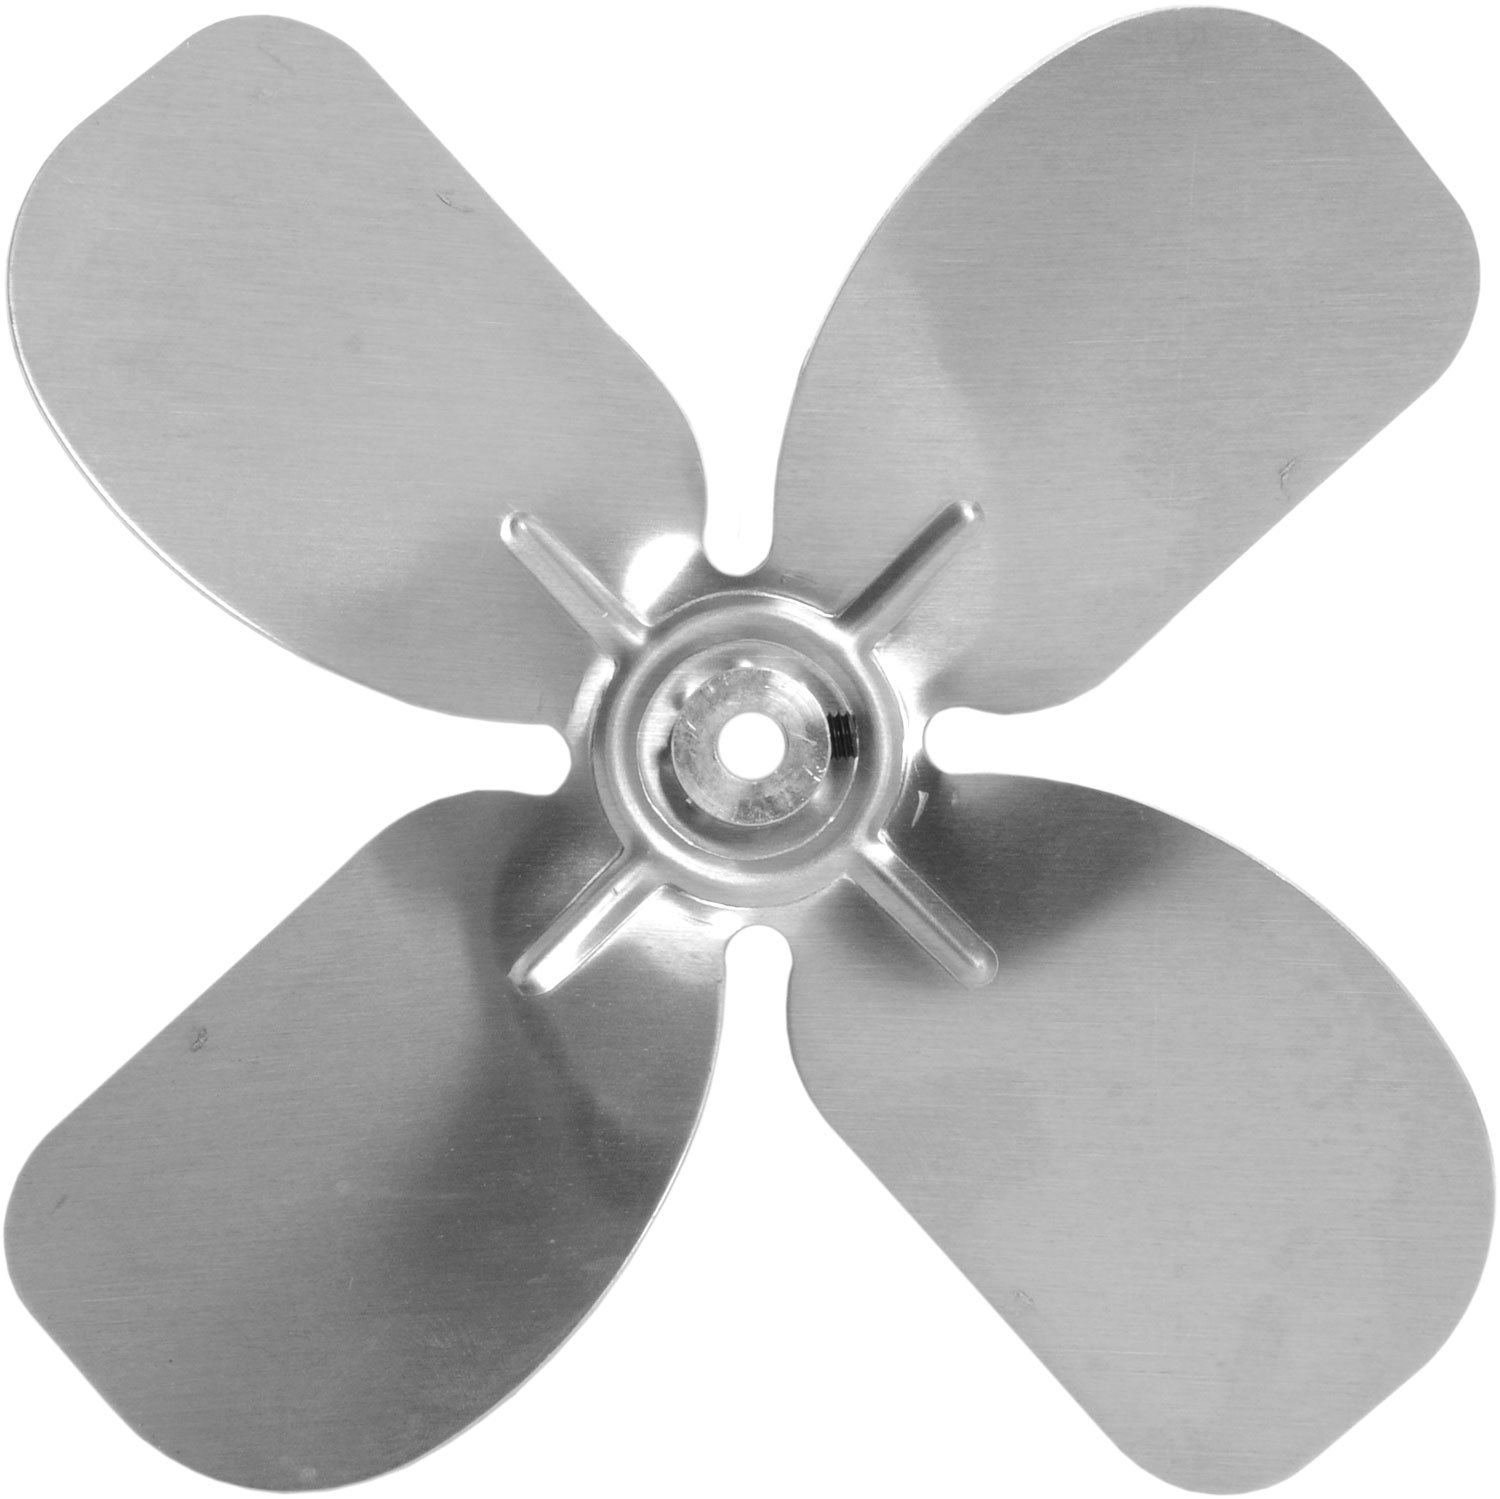 JEGS Performance Products 70603-FAN Replacement Fan Blade For Use With 12 000 BT